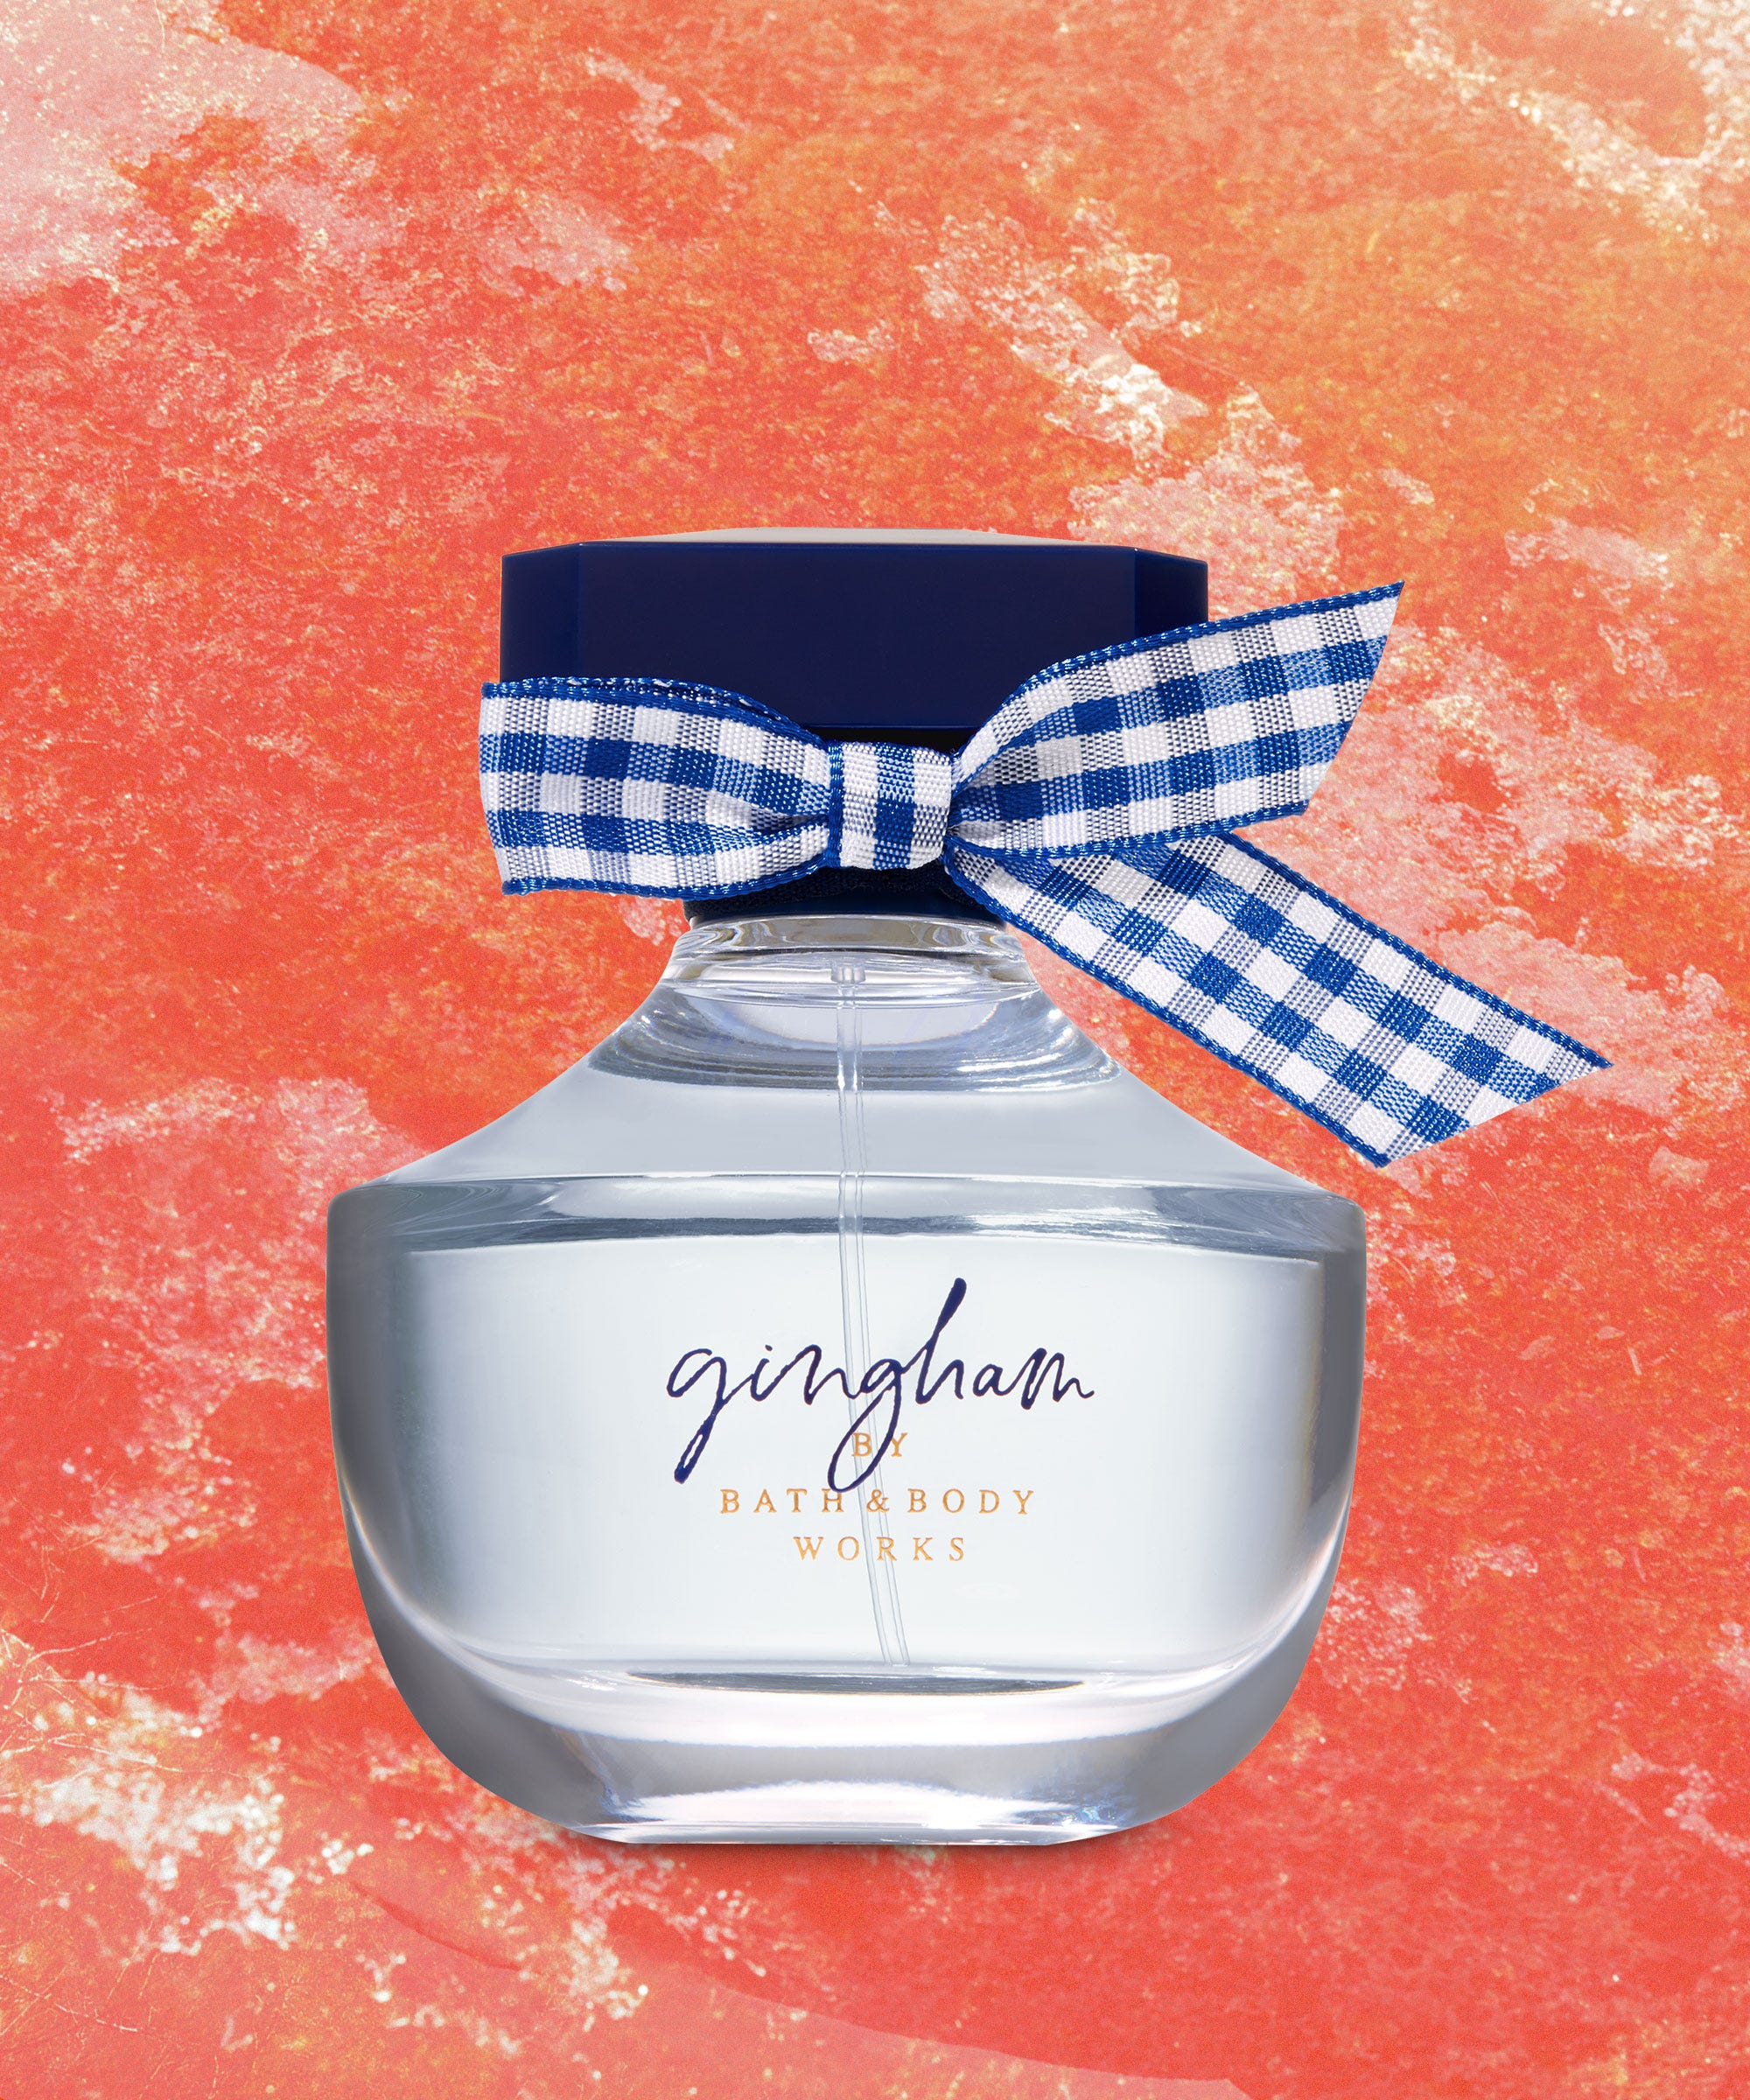 Bath & Body Works Dropped A Fresh Spring Scent — & It's An Instant Classic